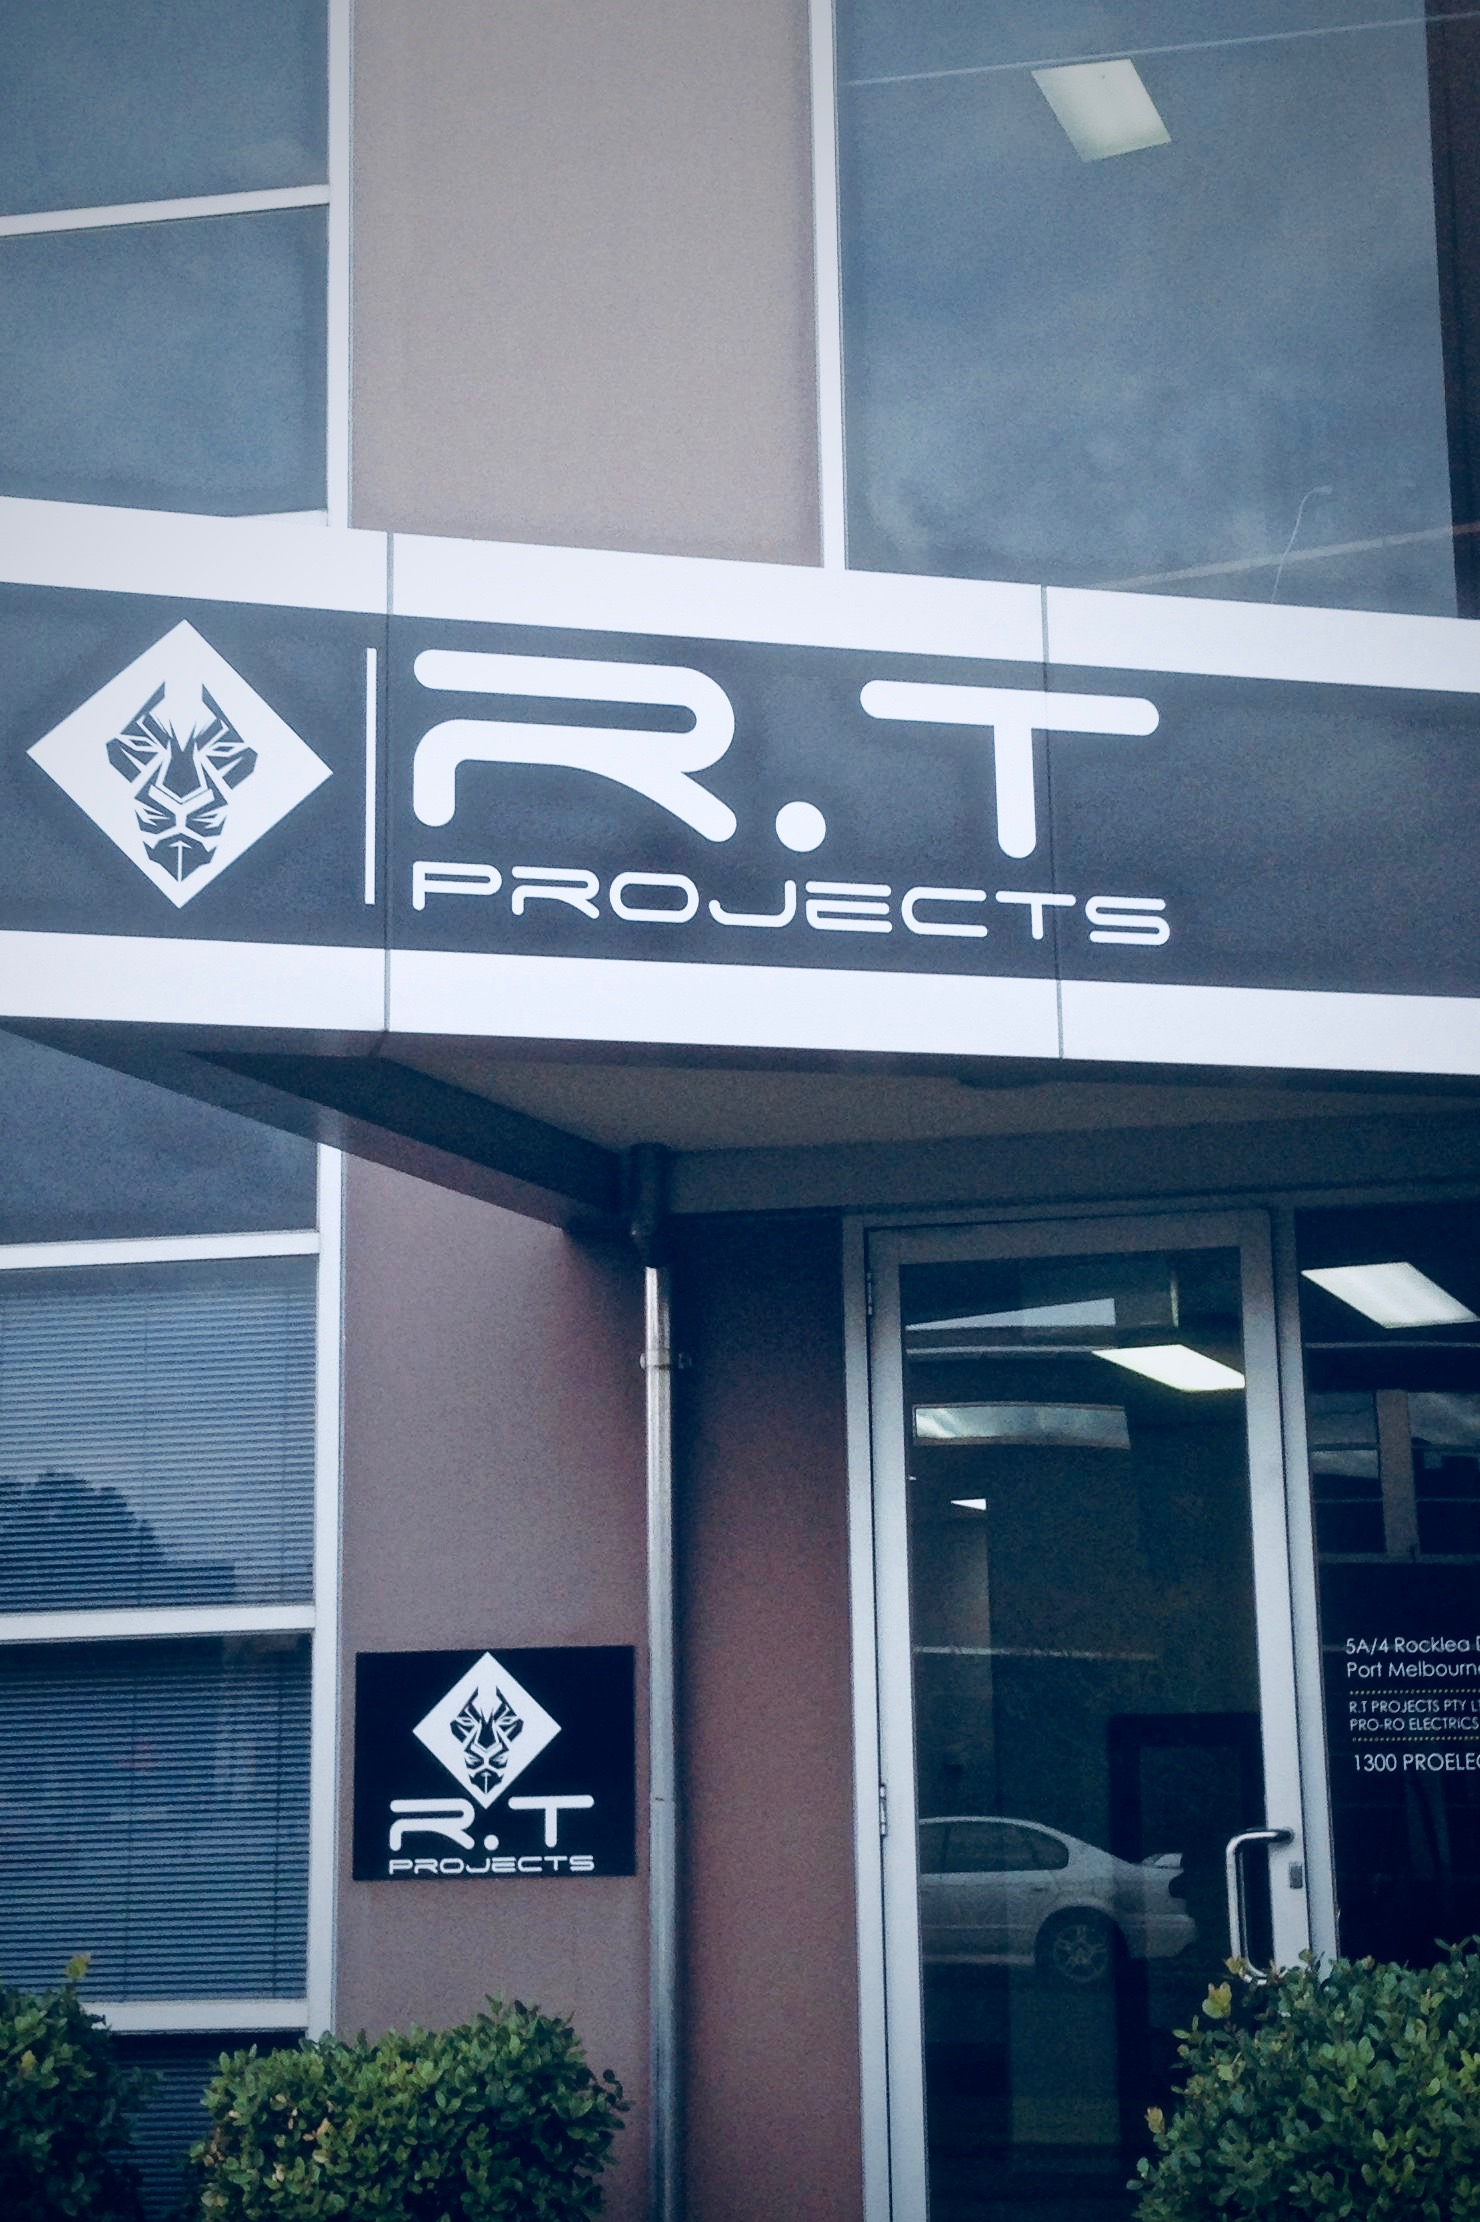 R.T Projects